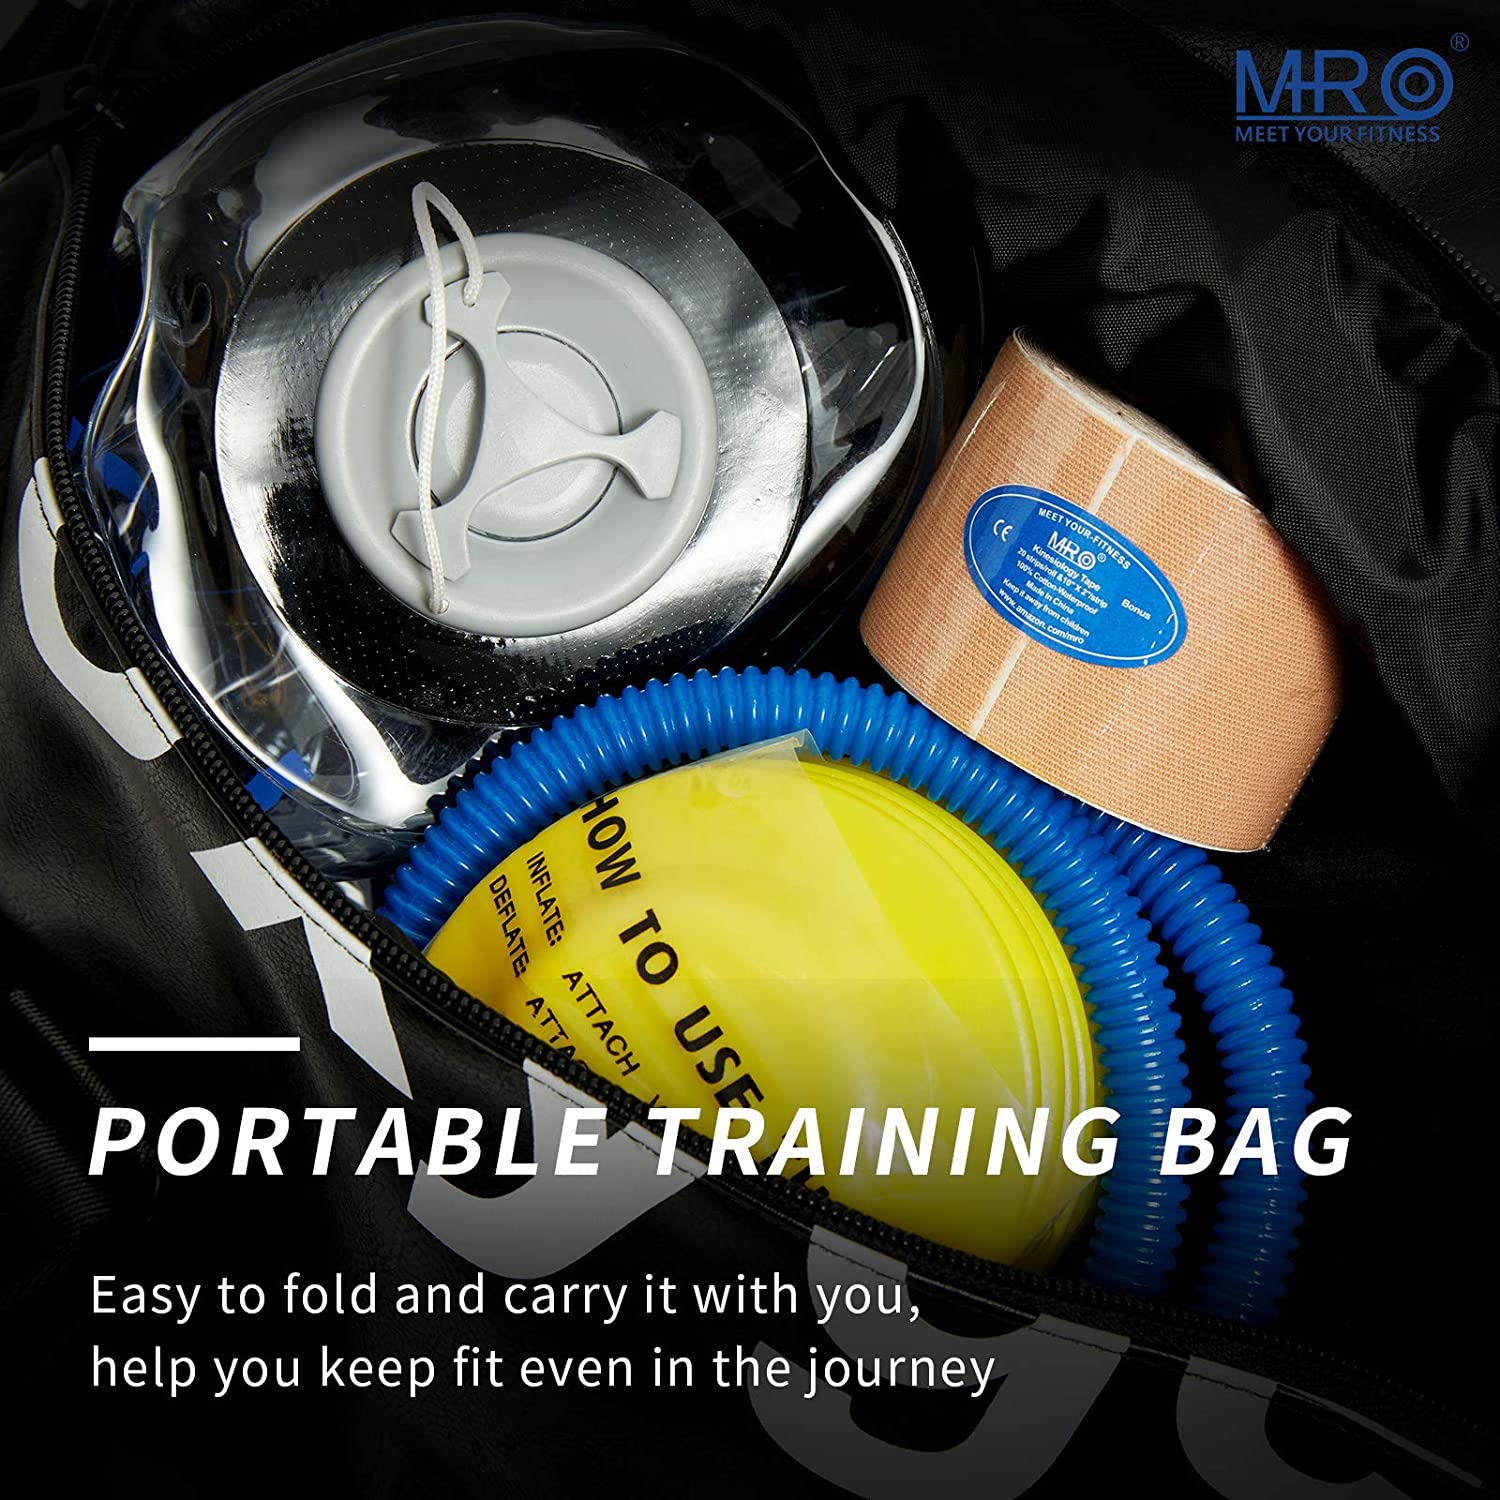 MRO Adjustable Aqua Bag, Sandbag Alternative, Power Bag with Water, Core and Balance Training Weight Bag, Portable Stability Home Gym Fitness Equipment for Full Body Workout (Cylinder -Max 30lbs) : Sports & Outdoors